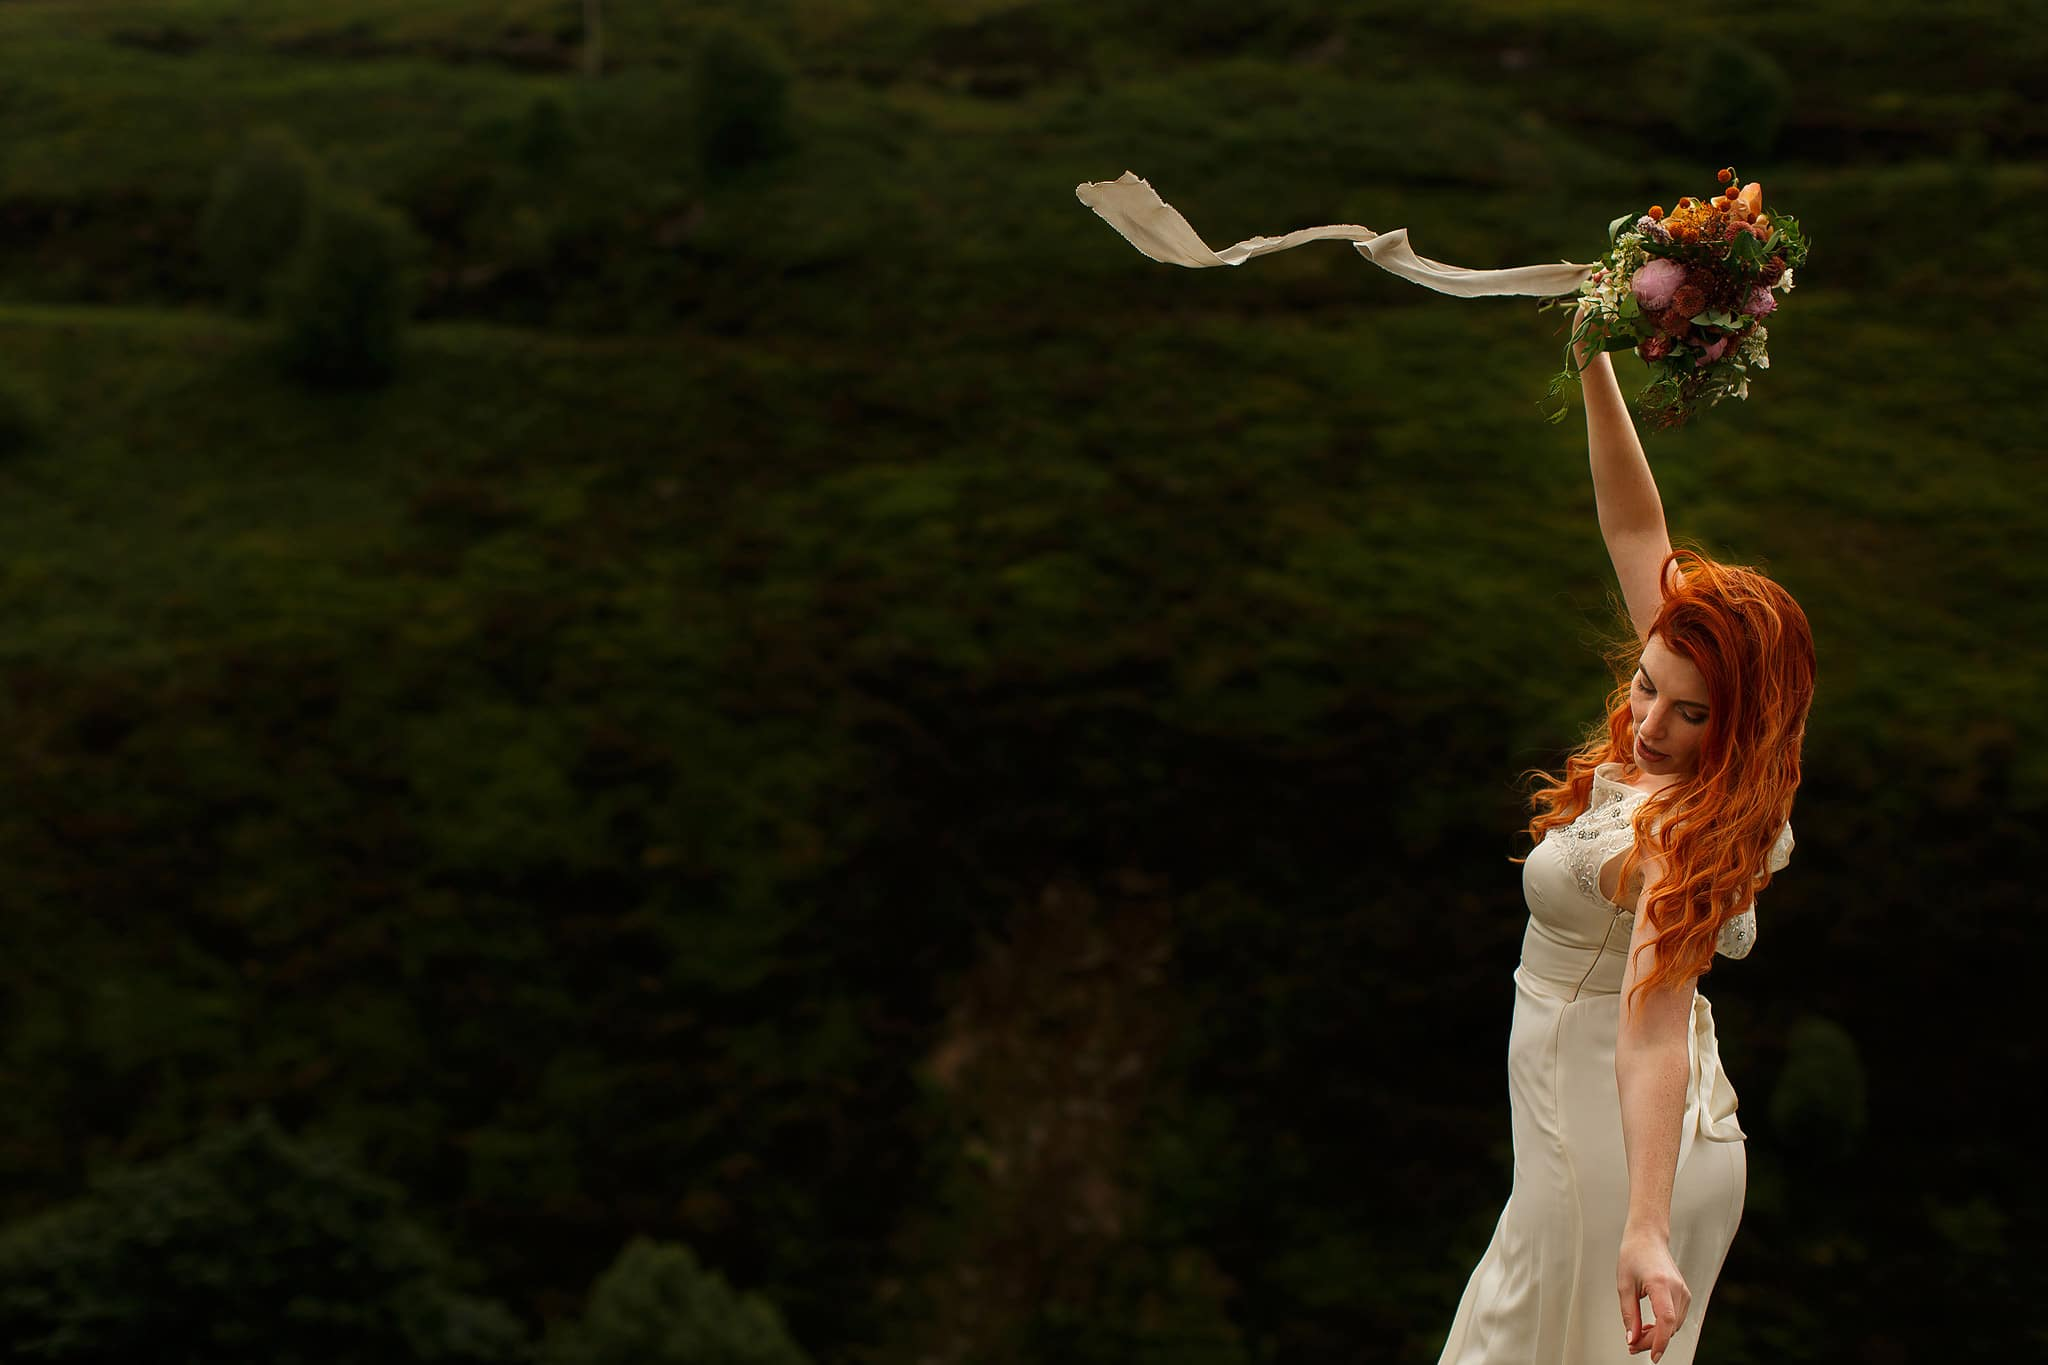 Red head bride balancing bare foot on a rock holding DIY wedding flower in the air as the ribbon and wedding dress blow in the wind.